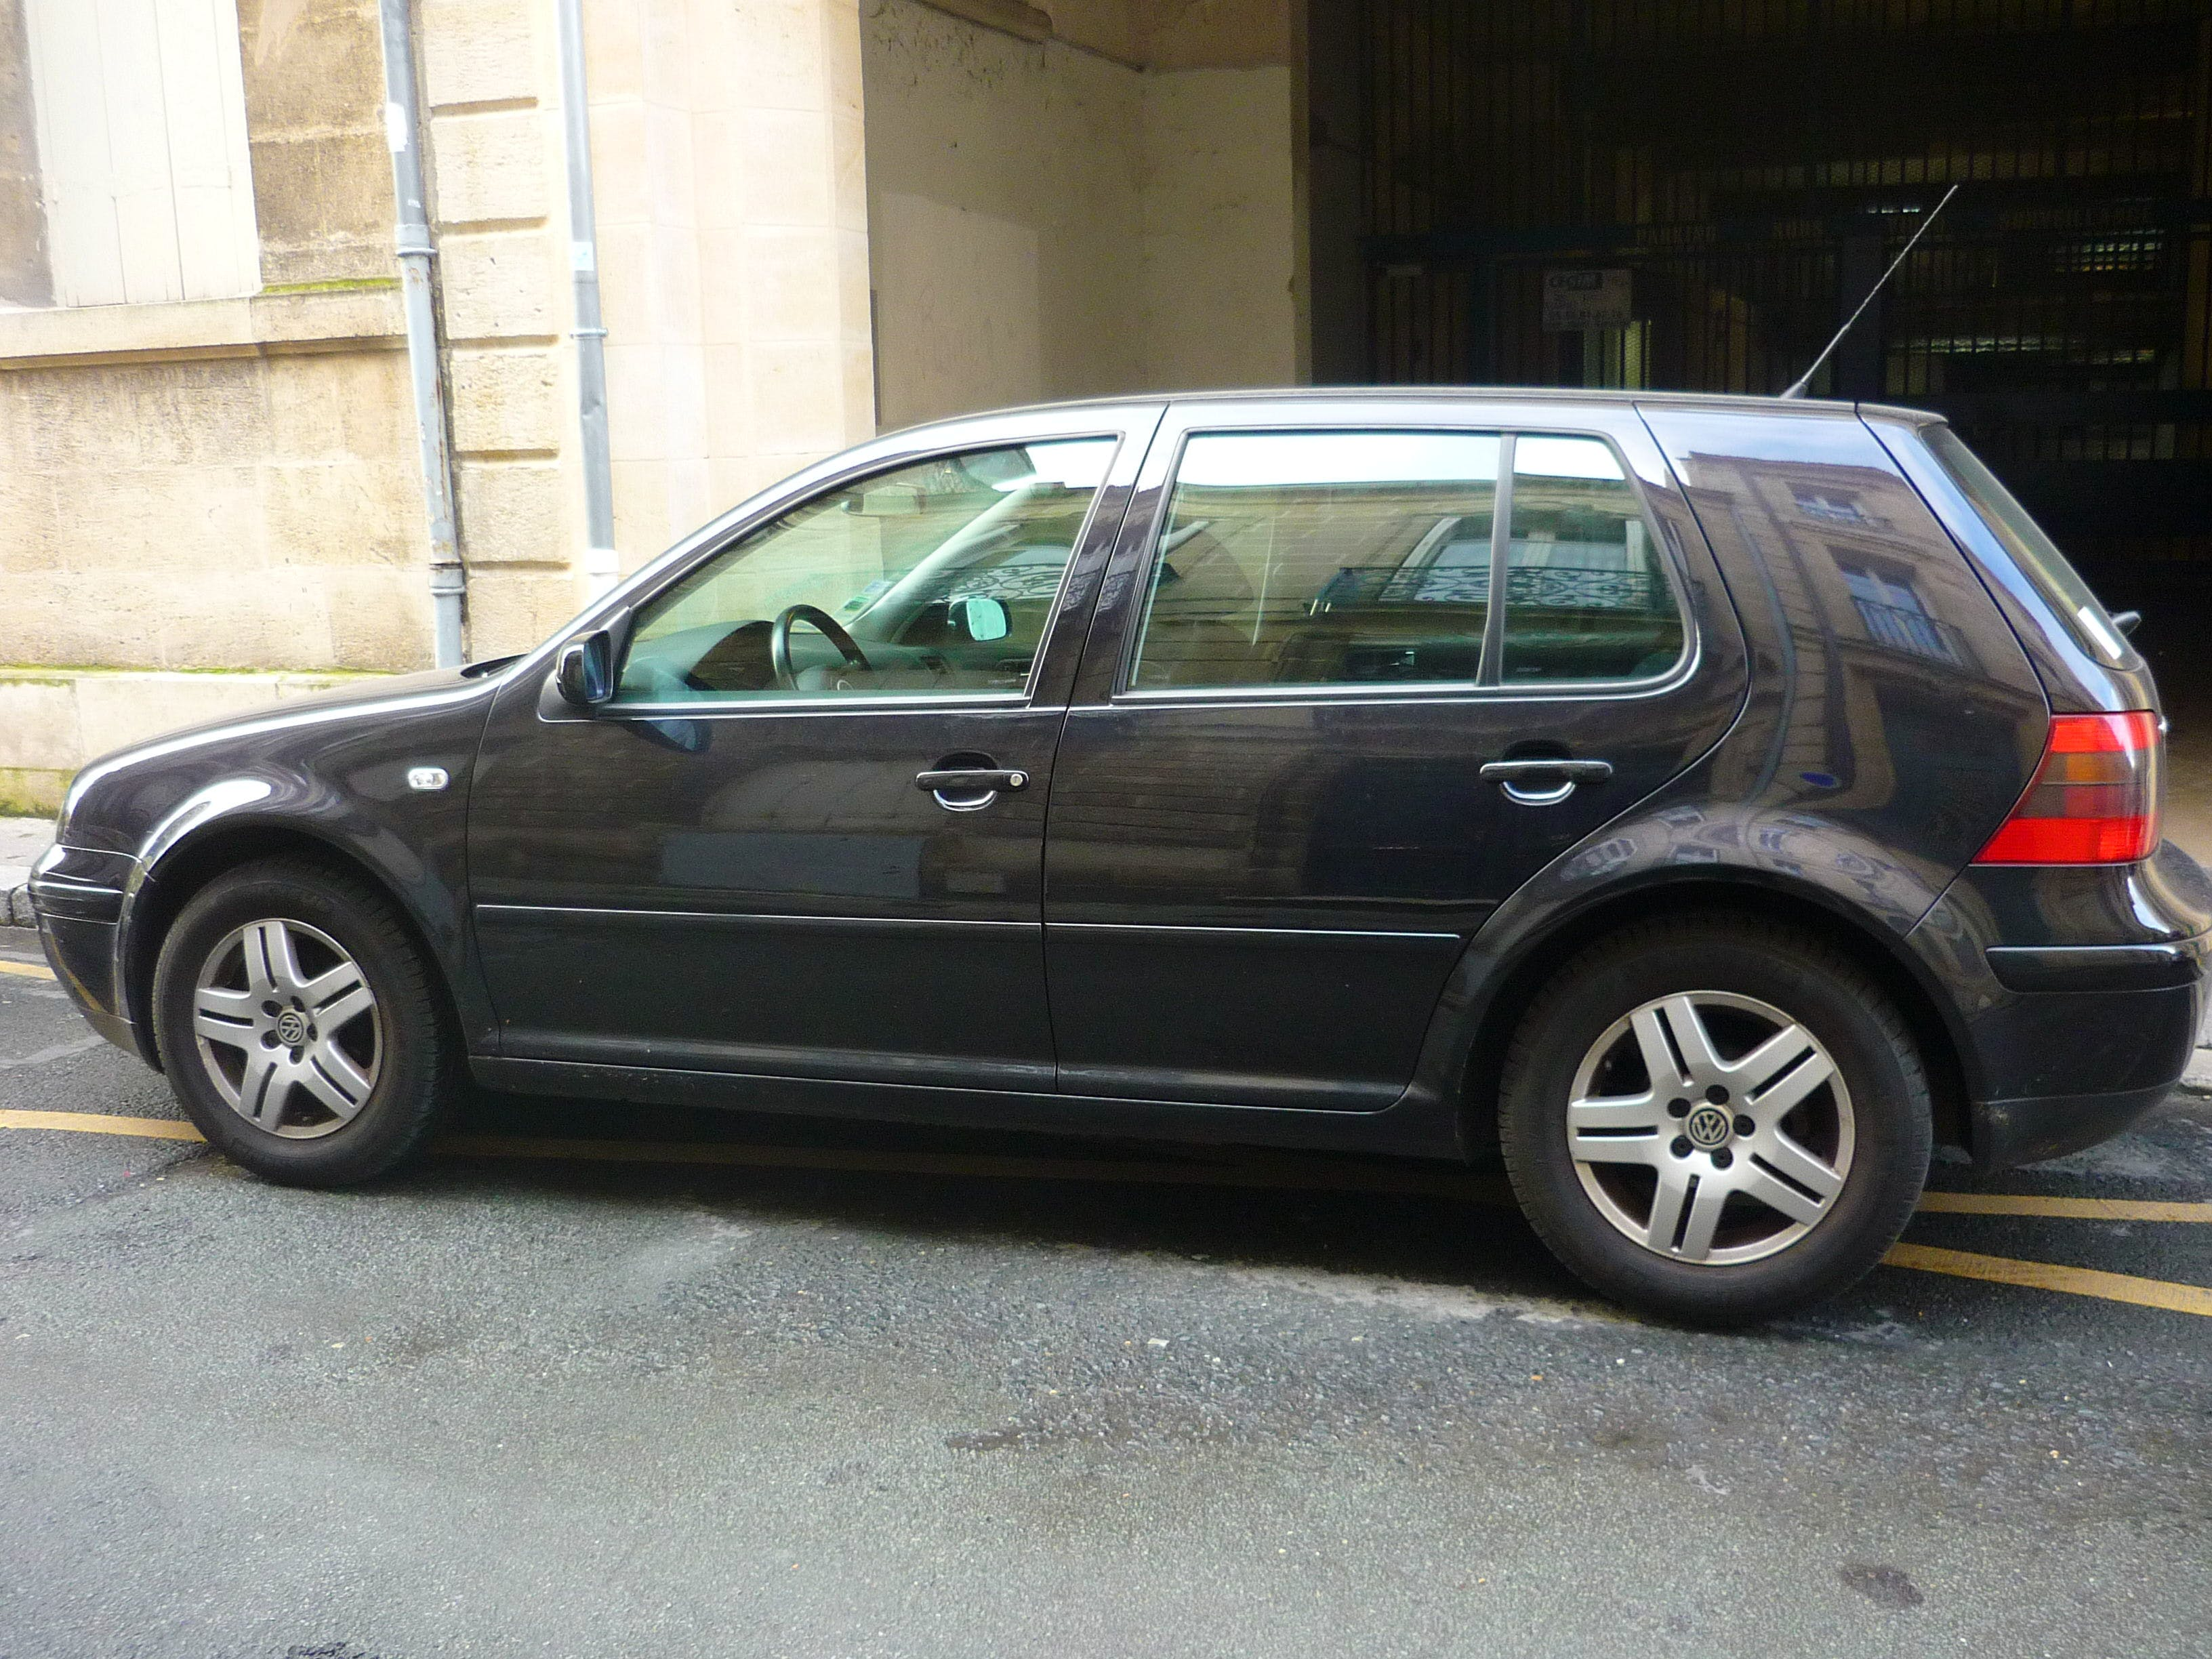 Volkswagen golf, 2001, Essence